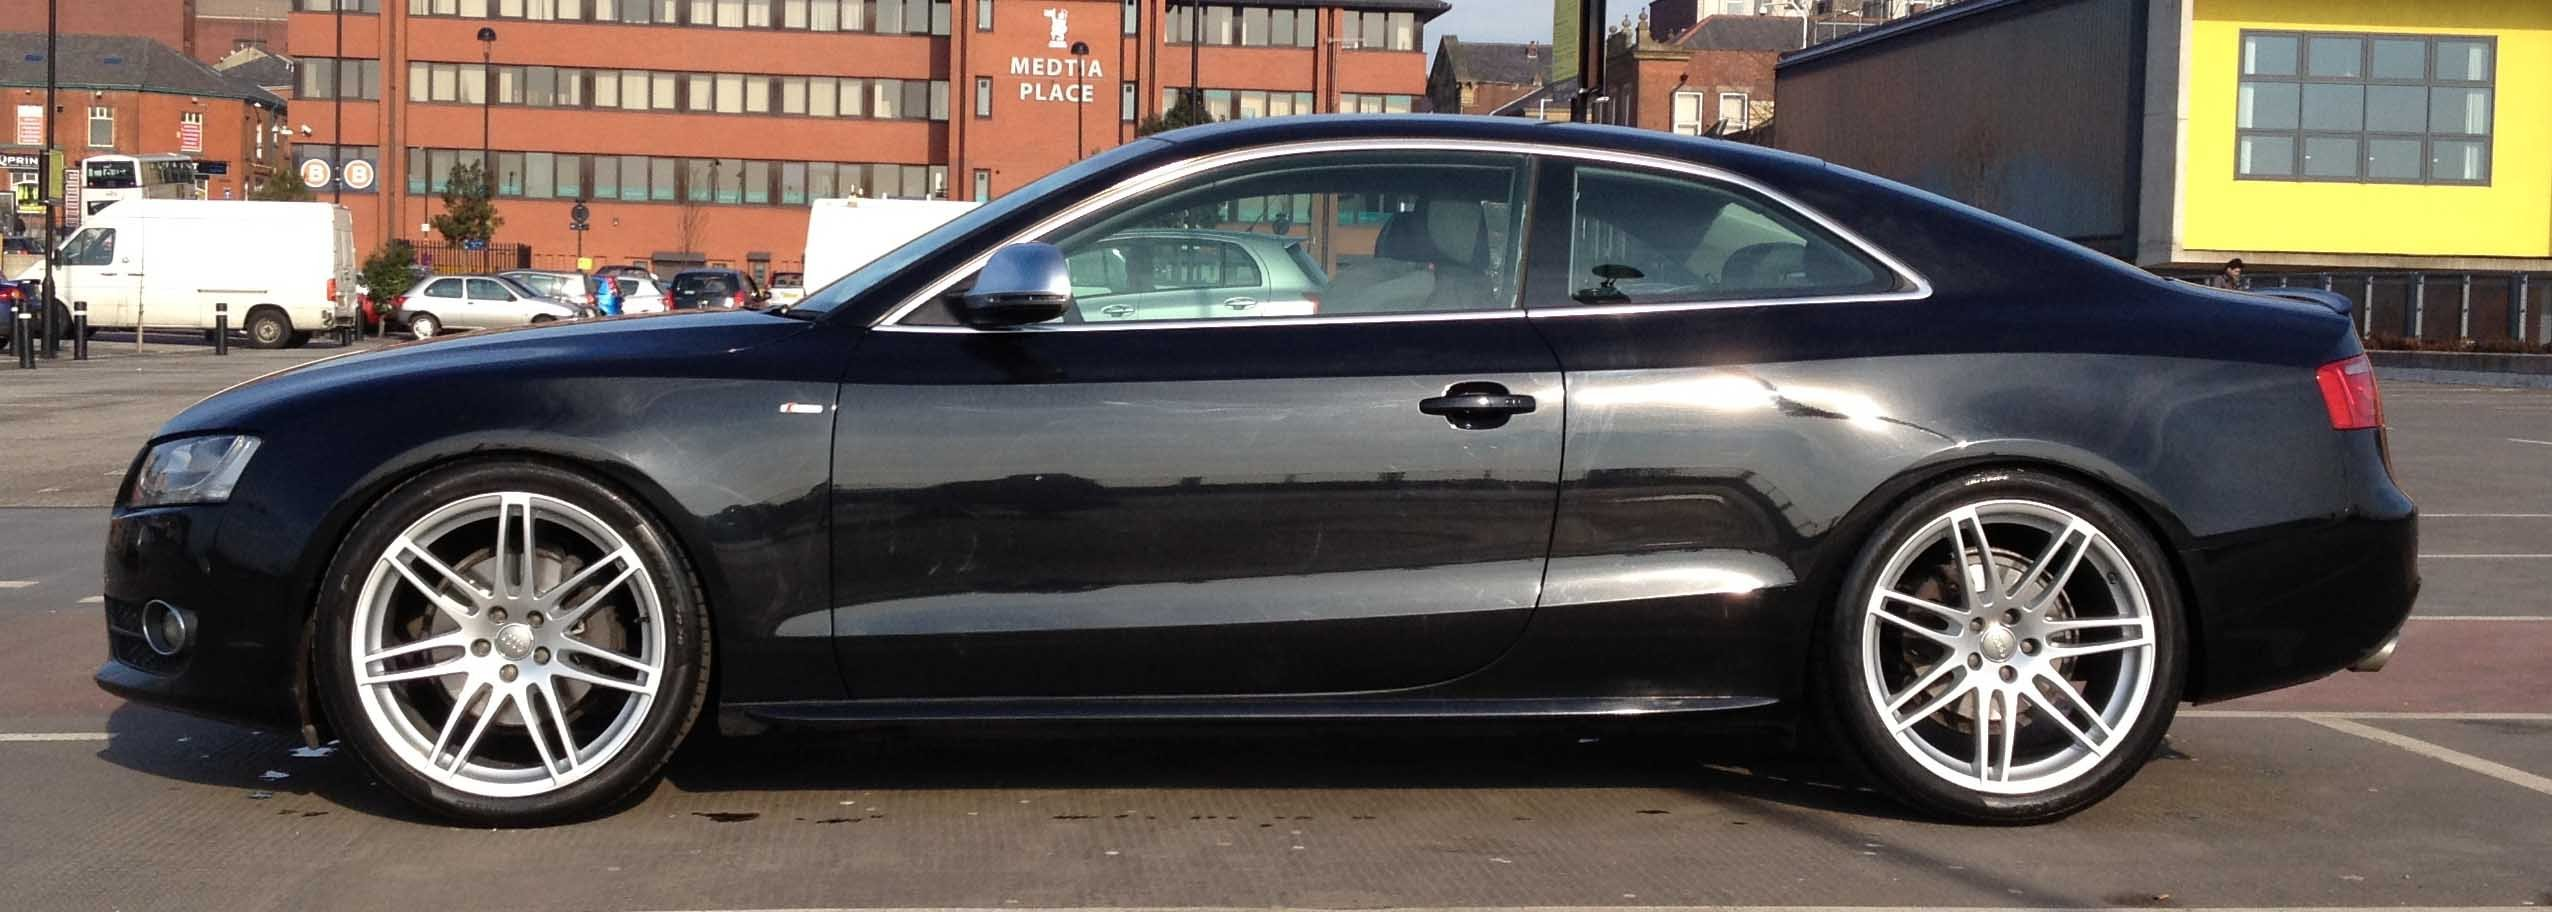 Post Your Wheels 19s Or 20s Pics Only Audi A5 Forum Audi S5 Forum